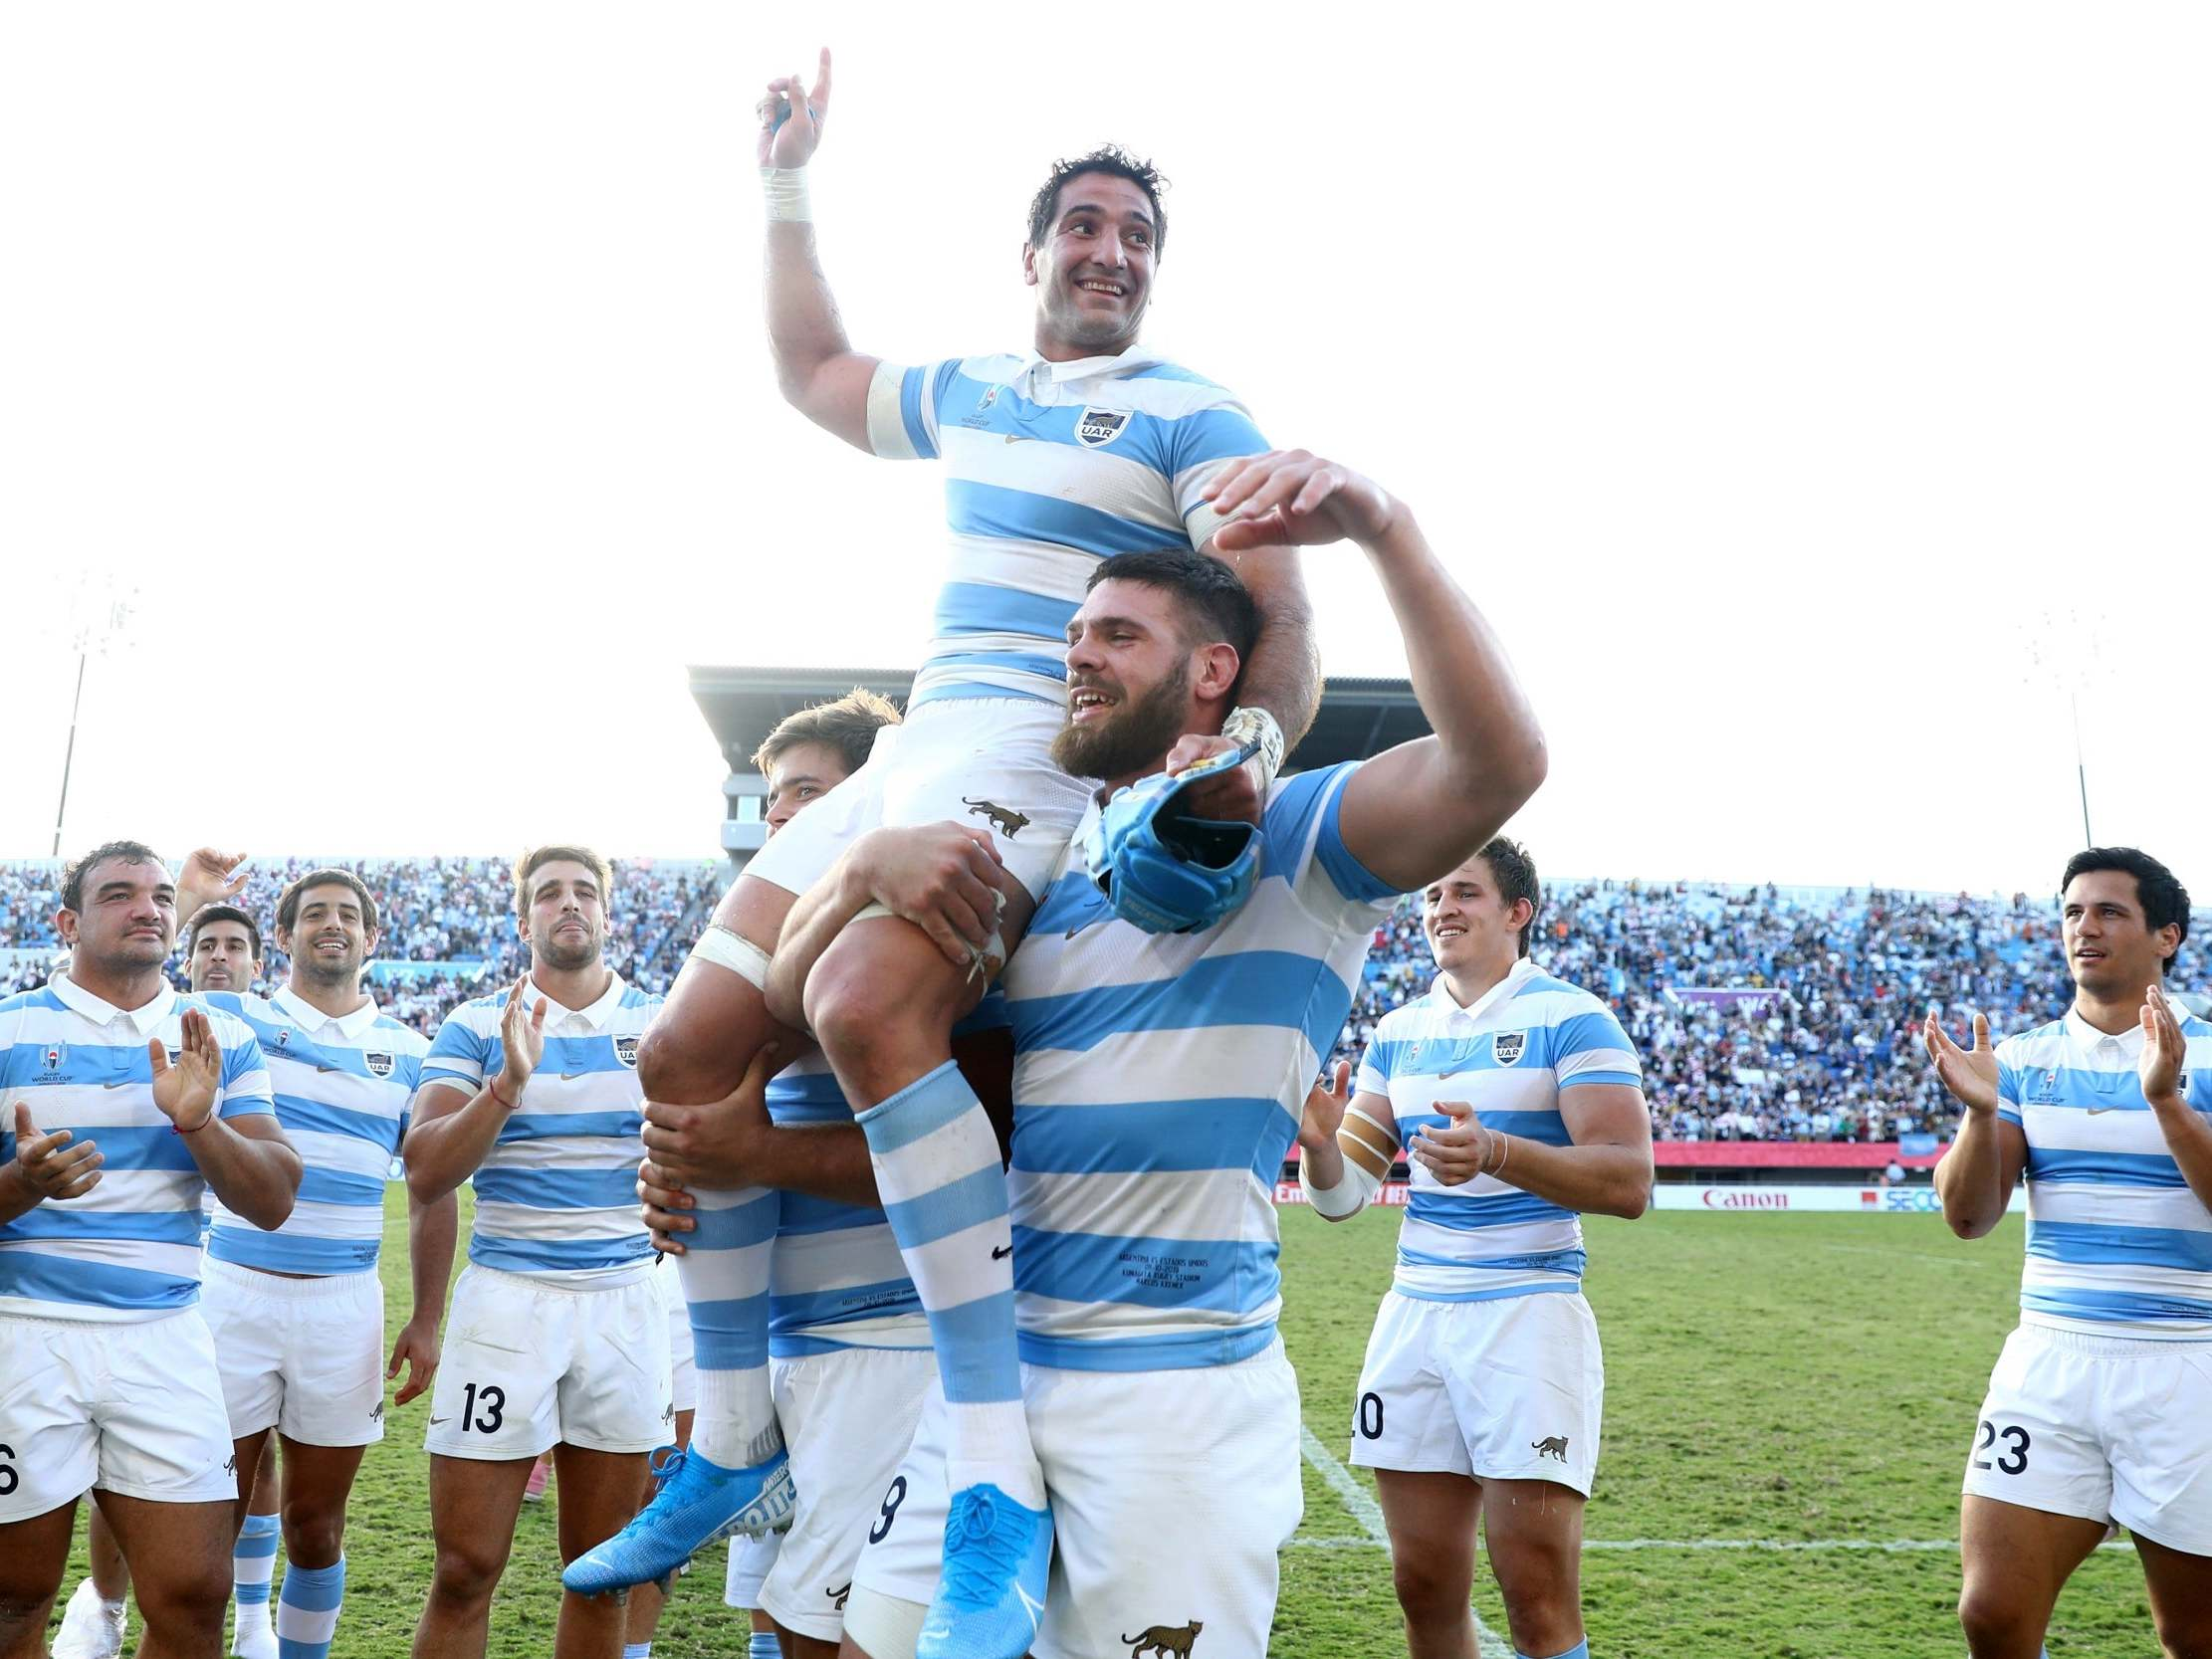 Rugby World Cup 2019: Argentina secure 2023 berth with consolation victory against United States